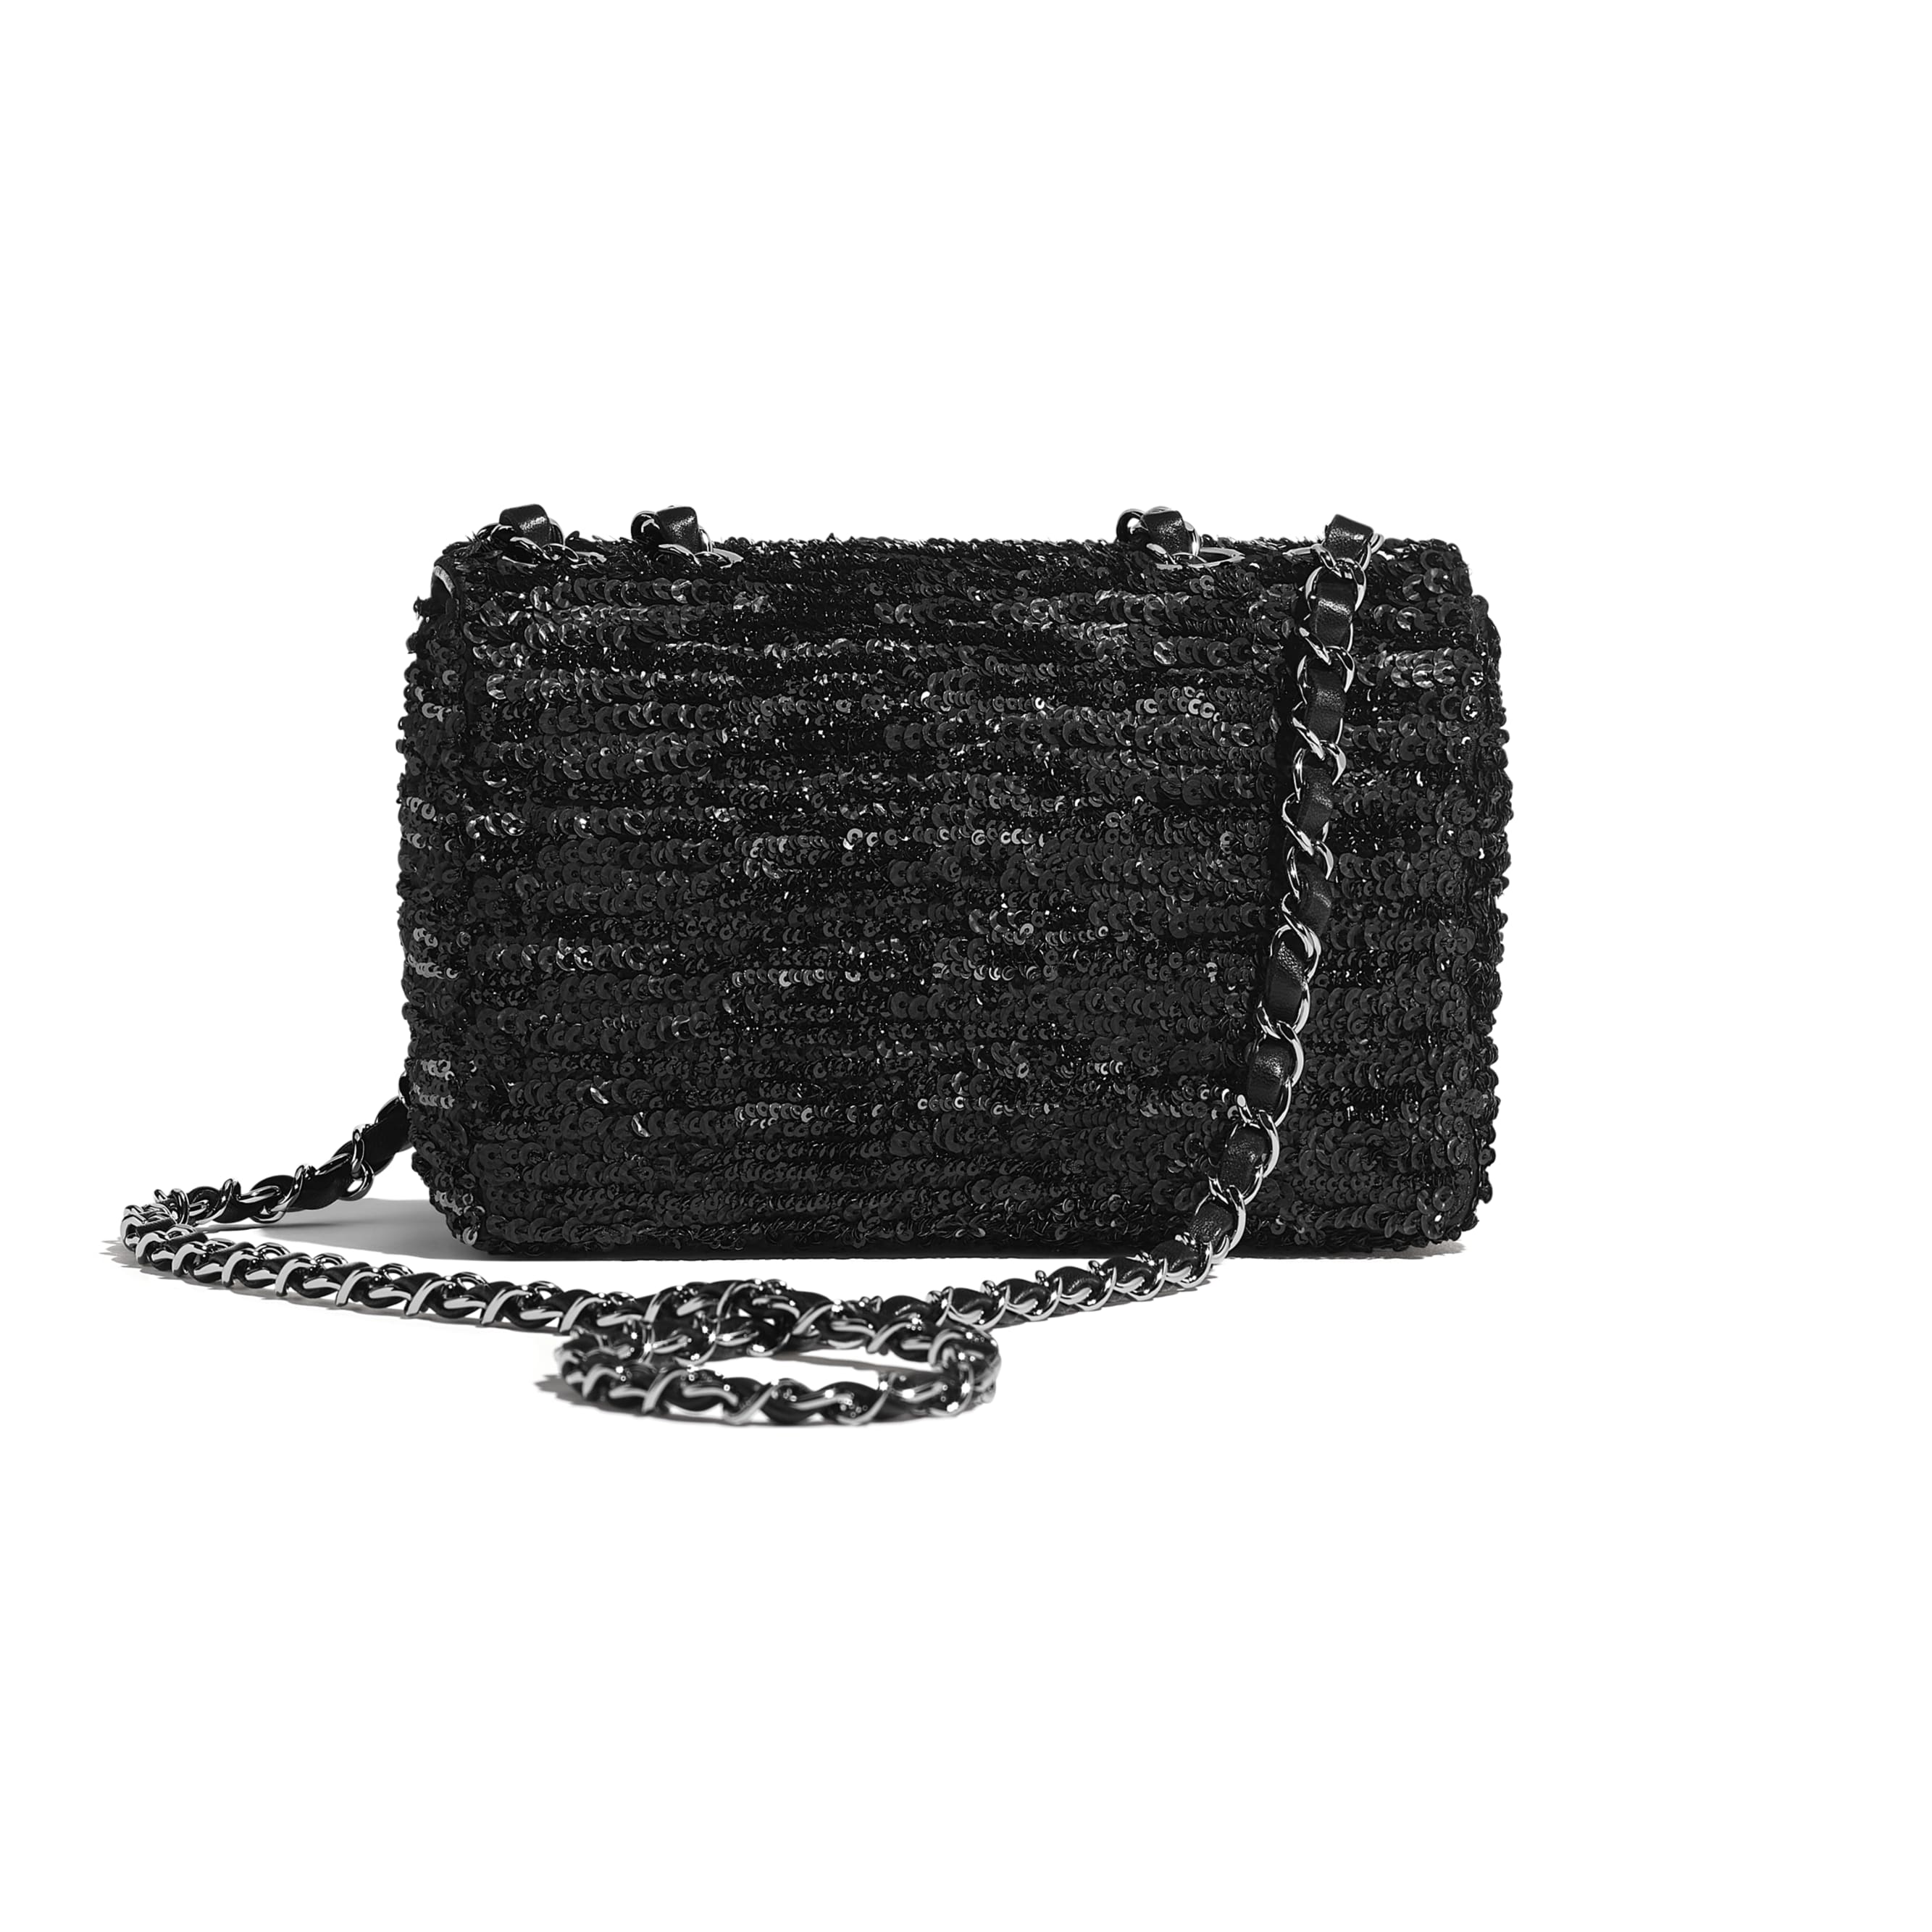 Flap Bag - Black - Sequins & Ruthenium-Finish Metal - CHANEL - Alternative view - see standard sized version